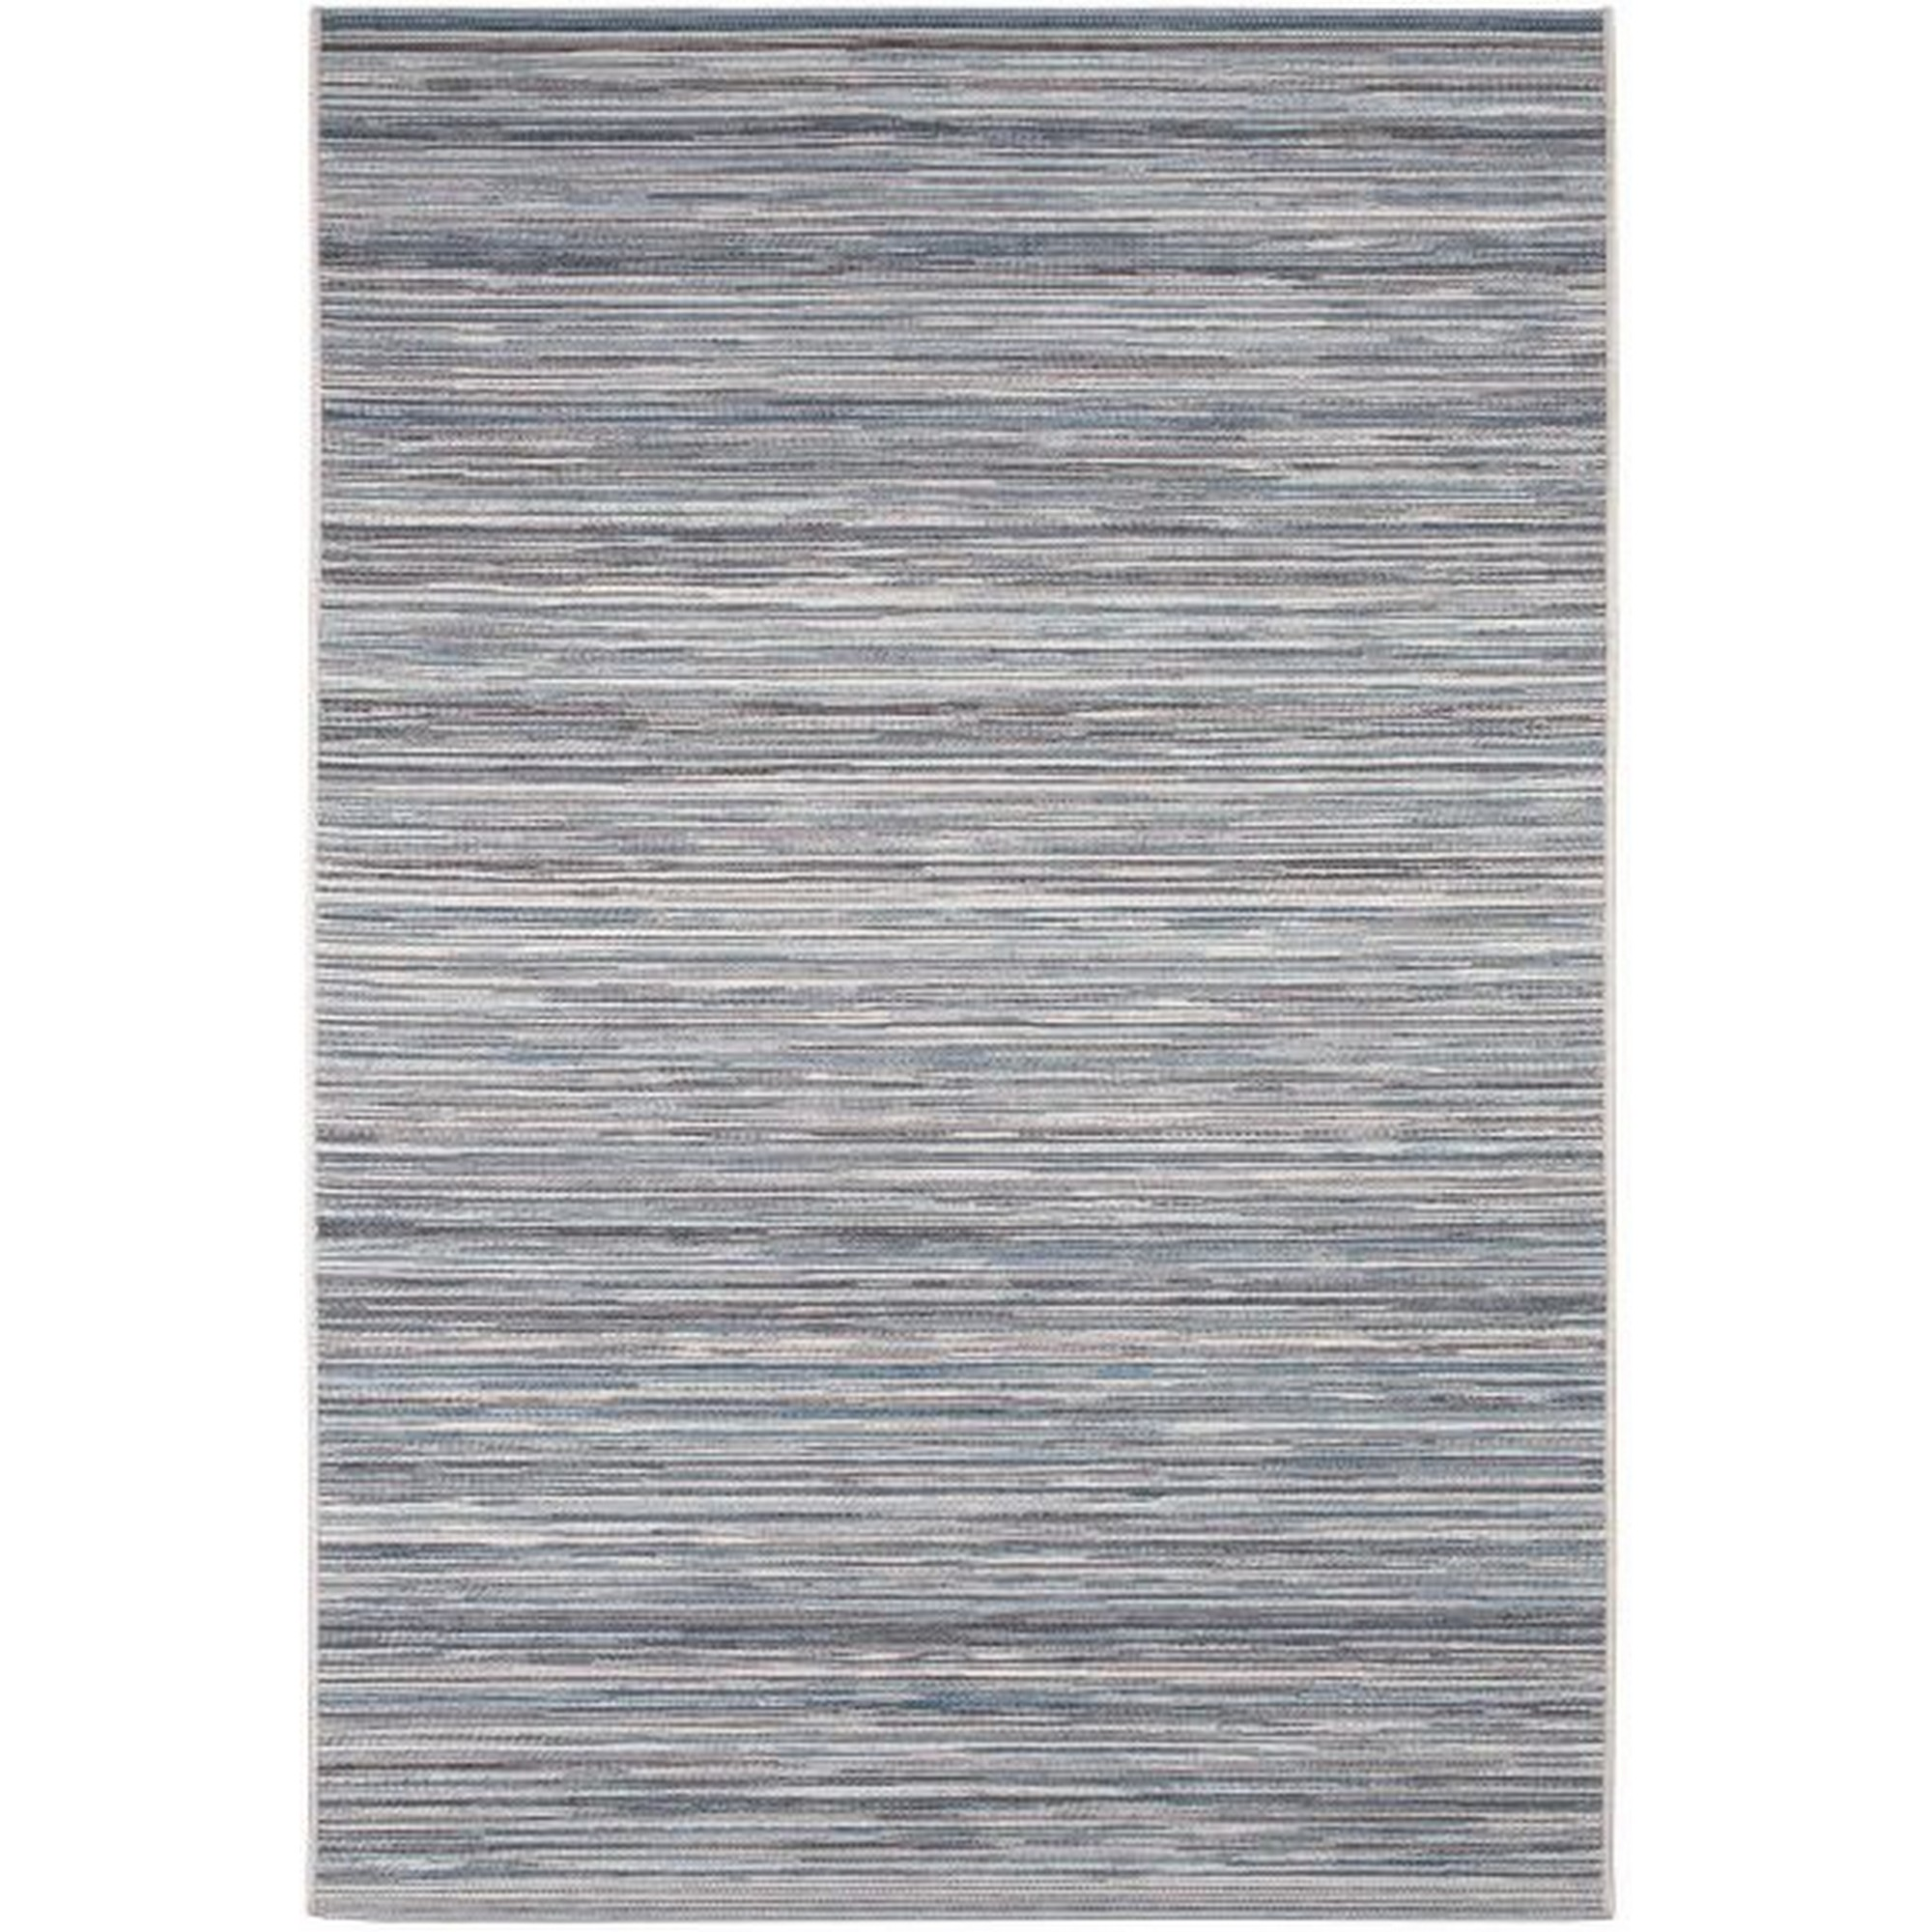 Brighton Rugs 98122 6000 In Cream Buy Online From The Rug